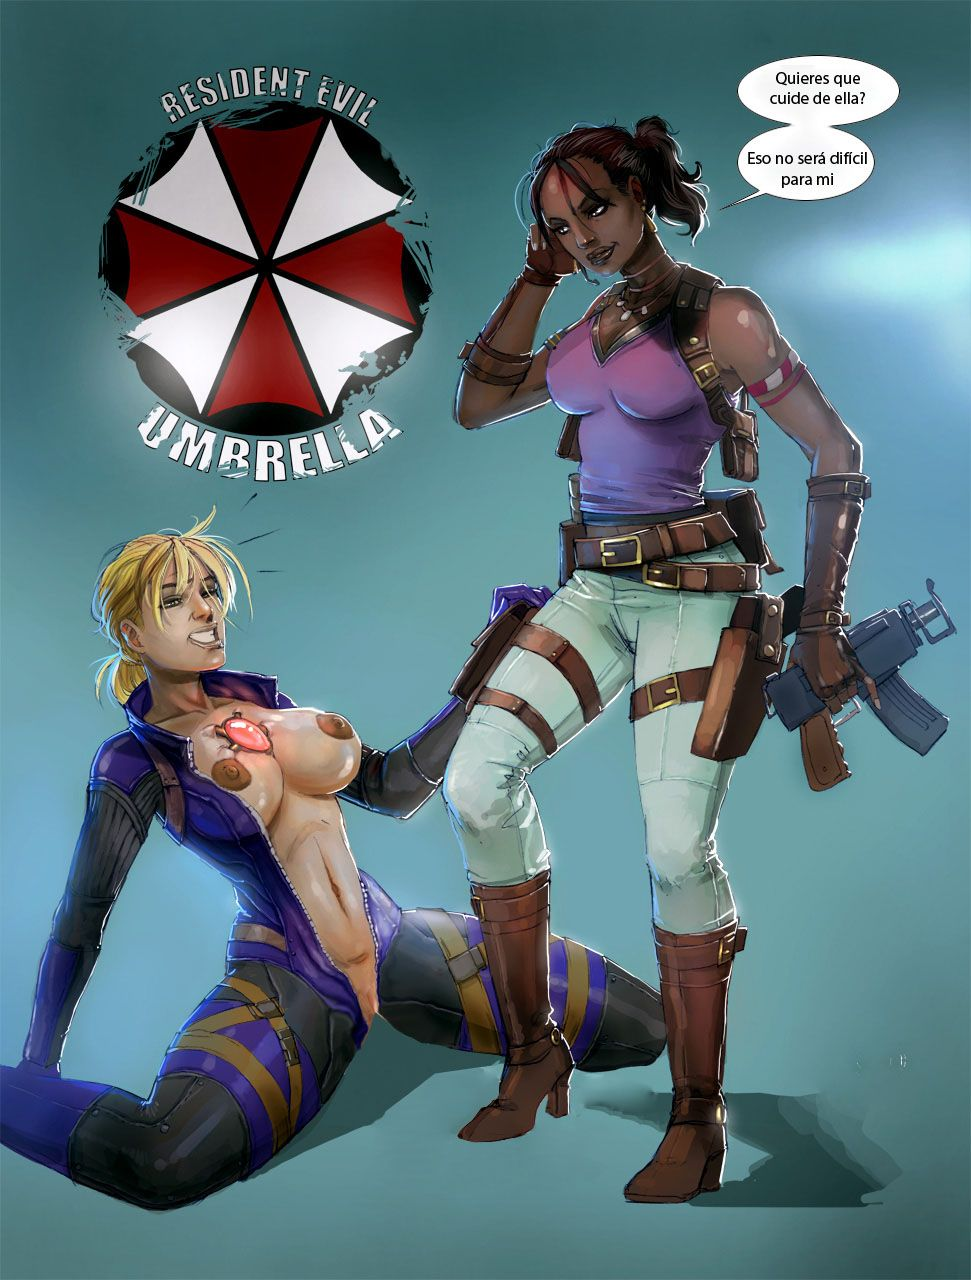 Resident evil shemale smut movies